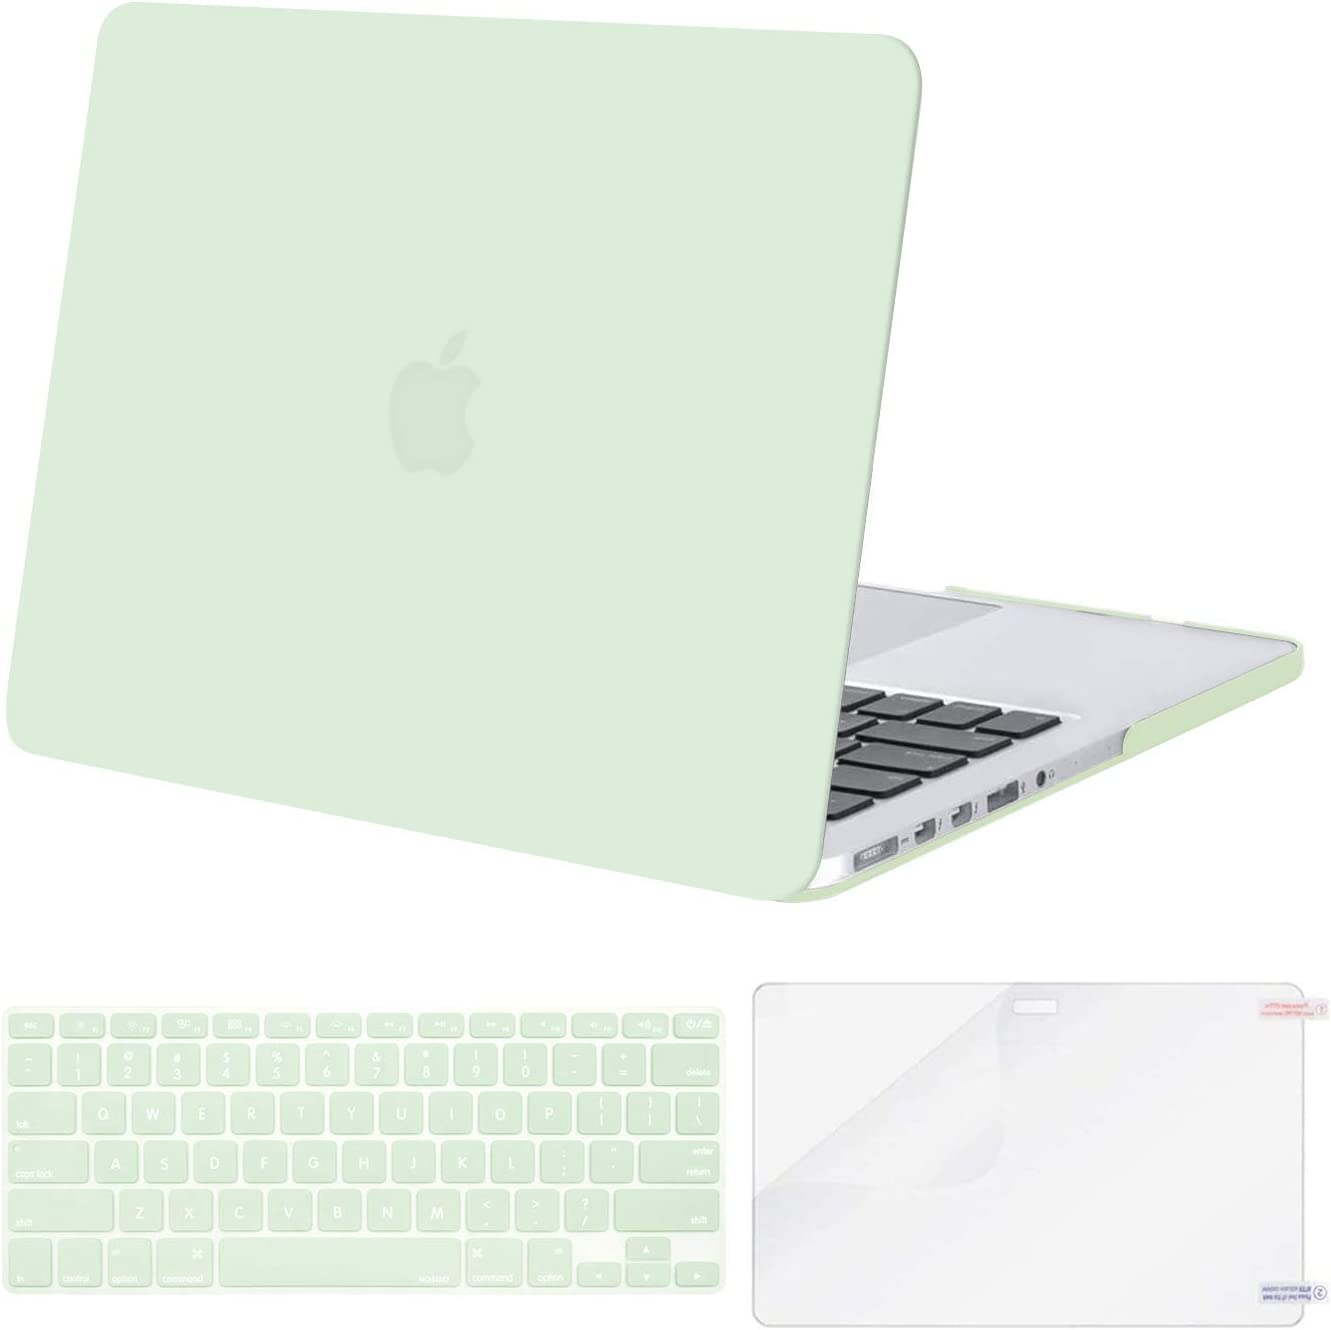 MOSISO Case Only Compatible with MacBook Pro Retina 13 inch (Models: A1502 & A1425) (Older Version Release 2015 - end 2012), Plastic Hard Shell Case & Keyboard Cover & Screen Protector, Honeydew Green